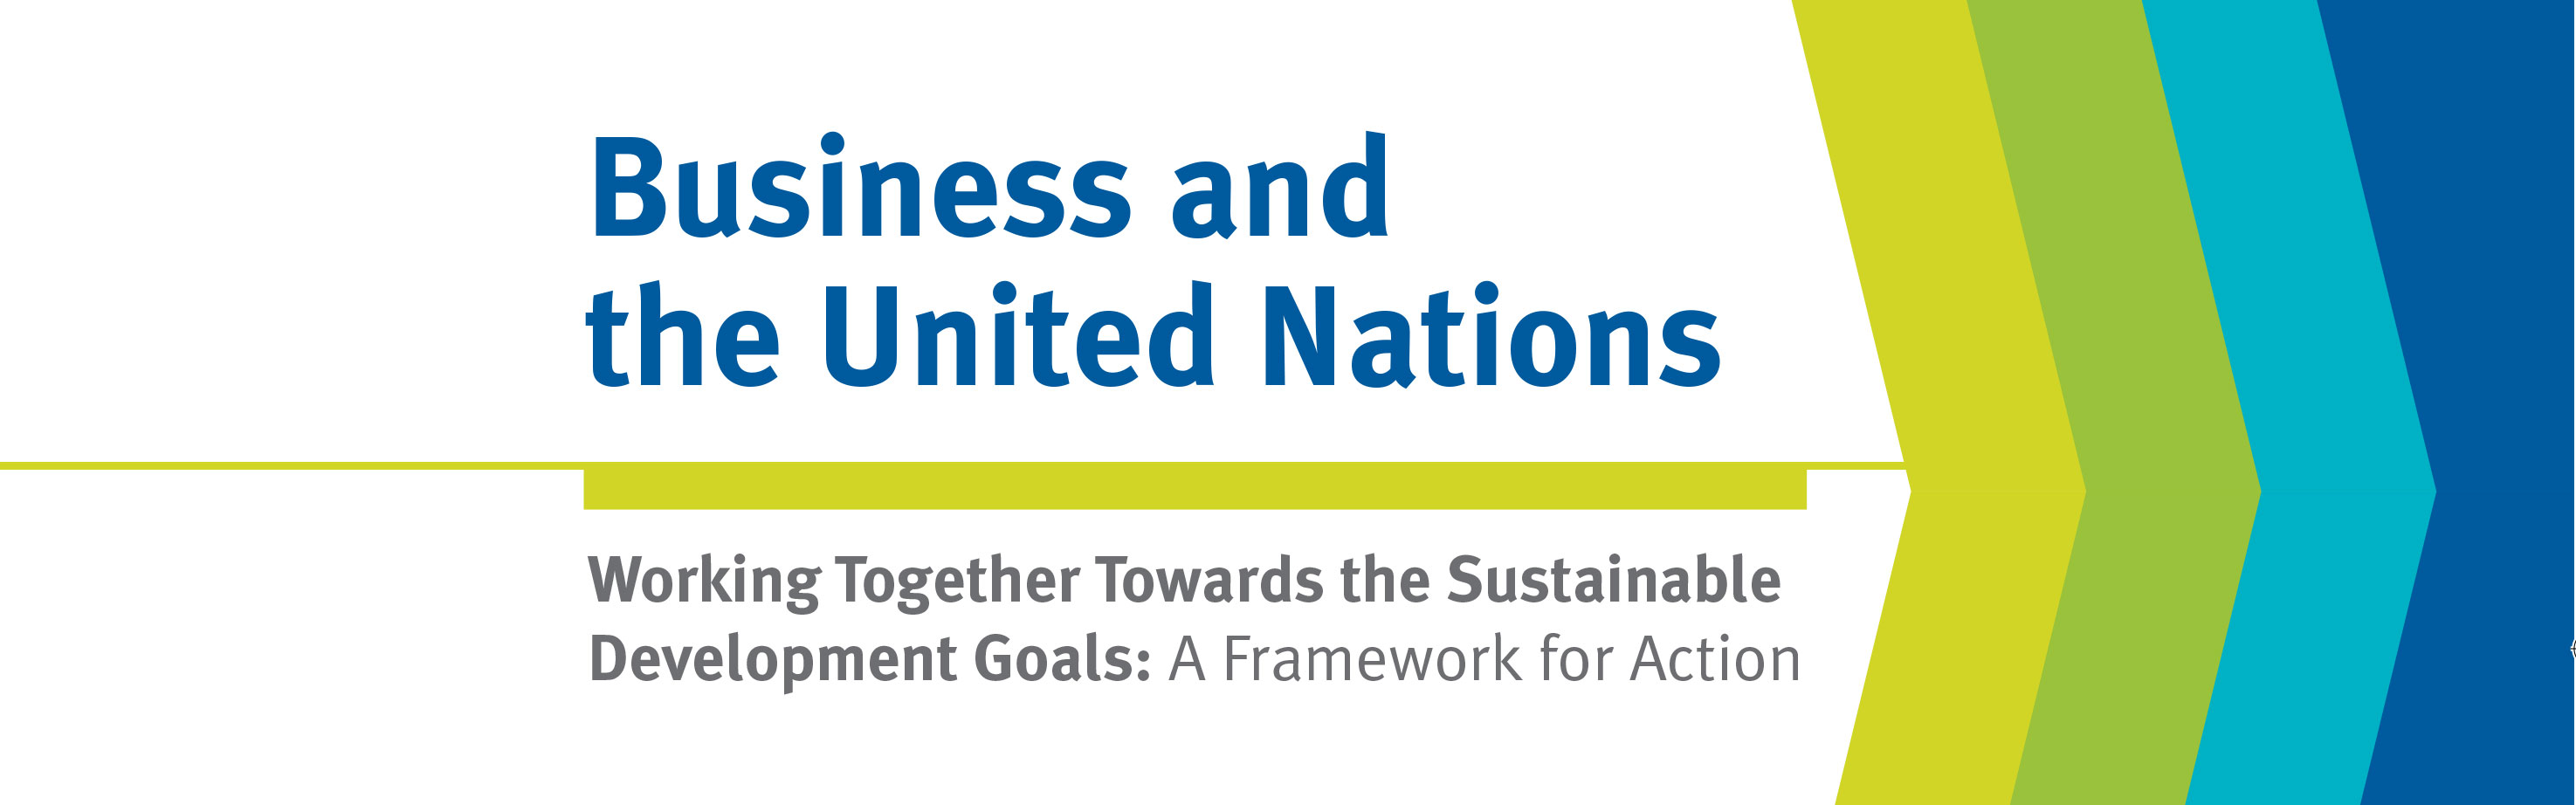 Business And UN Header Image